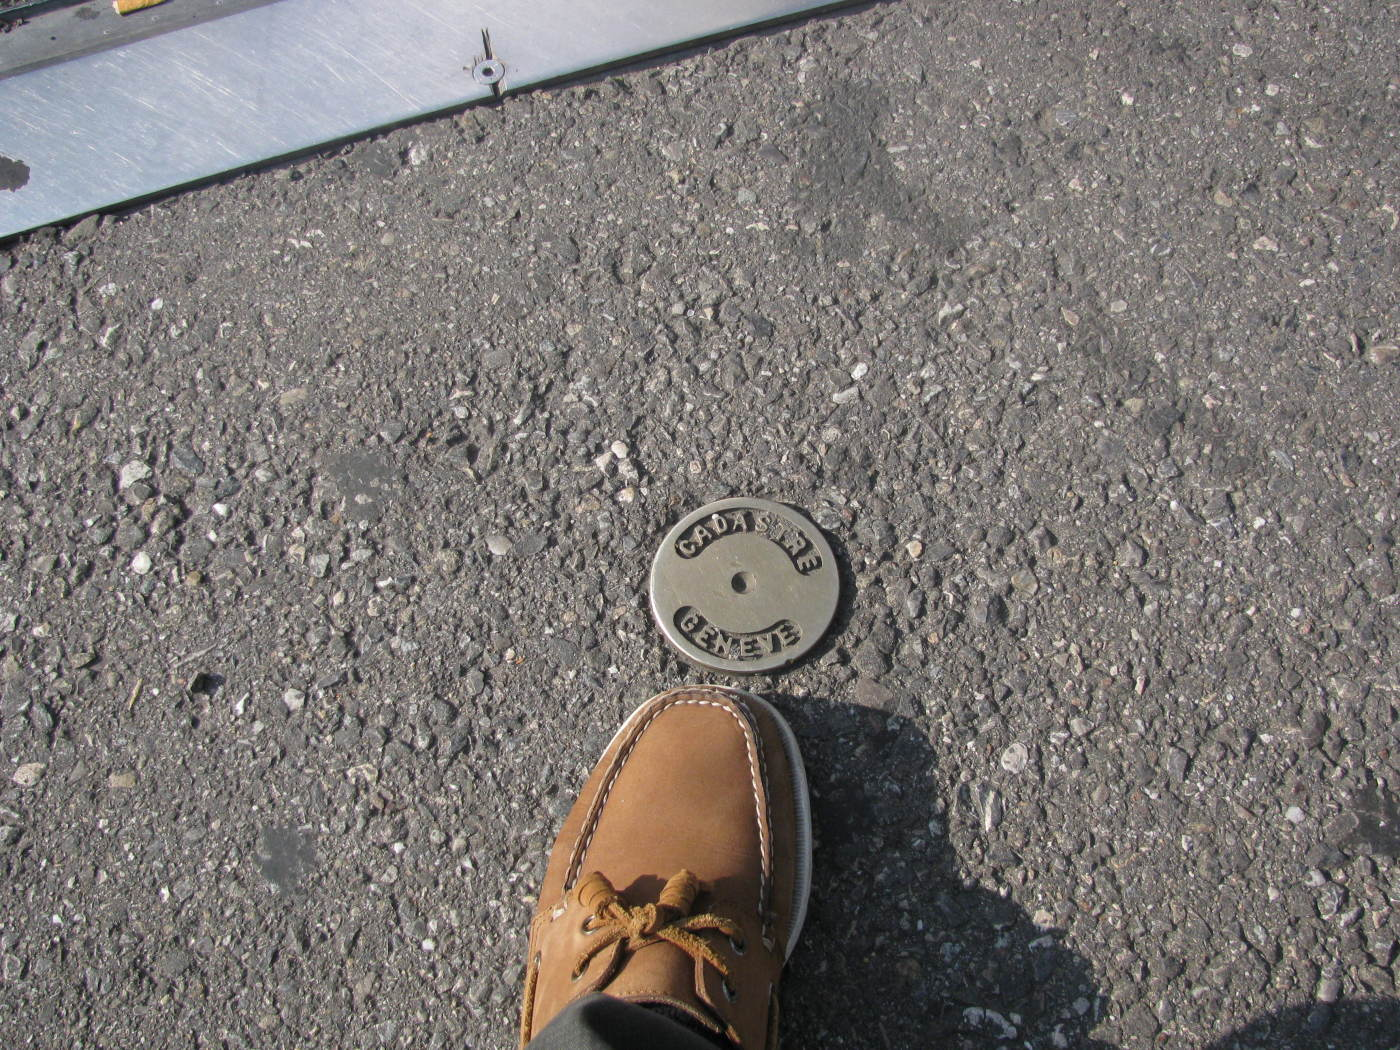 Survey Marker, Geneva, Switzerland